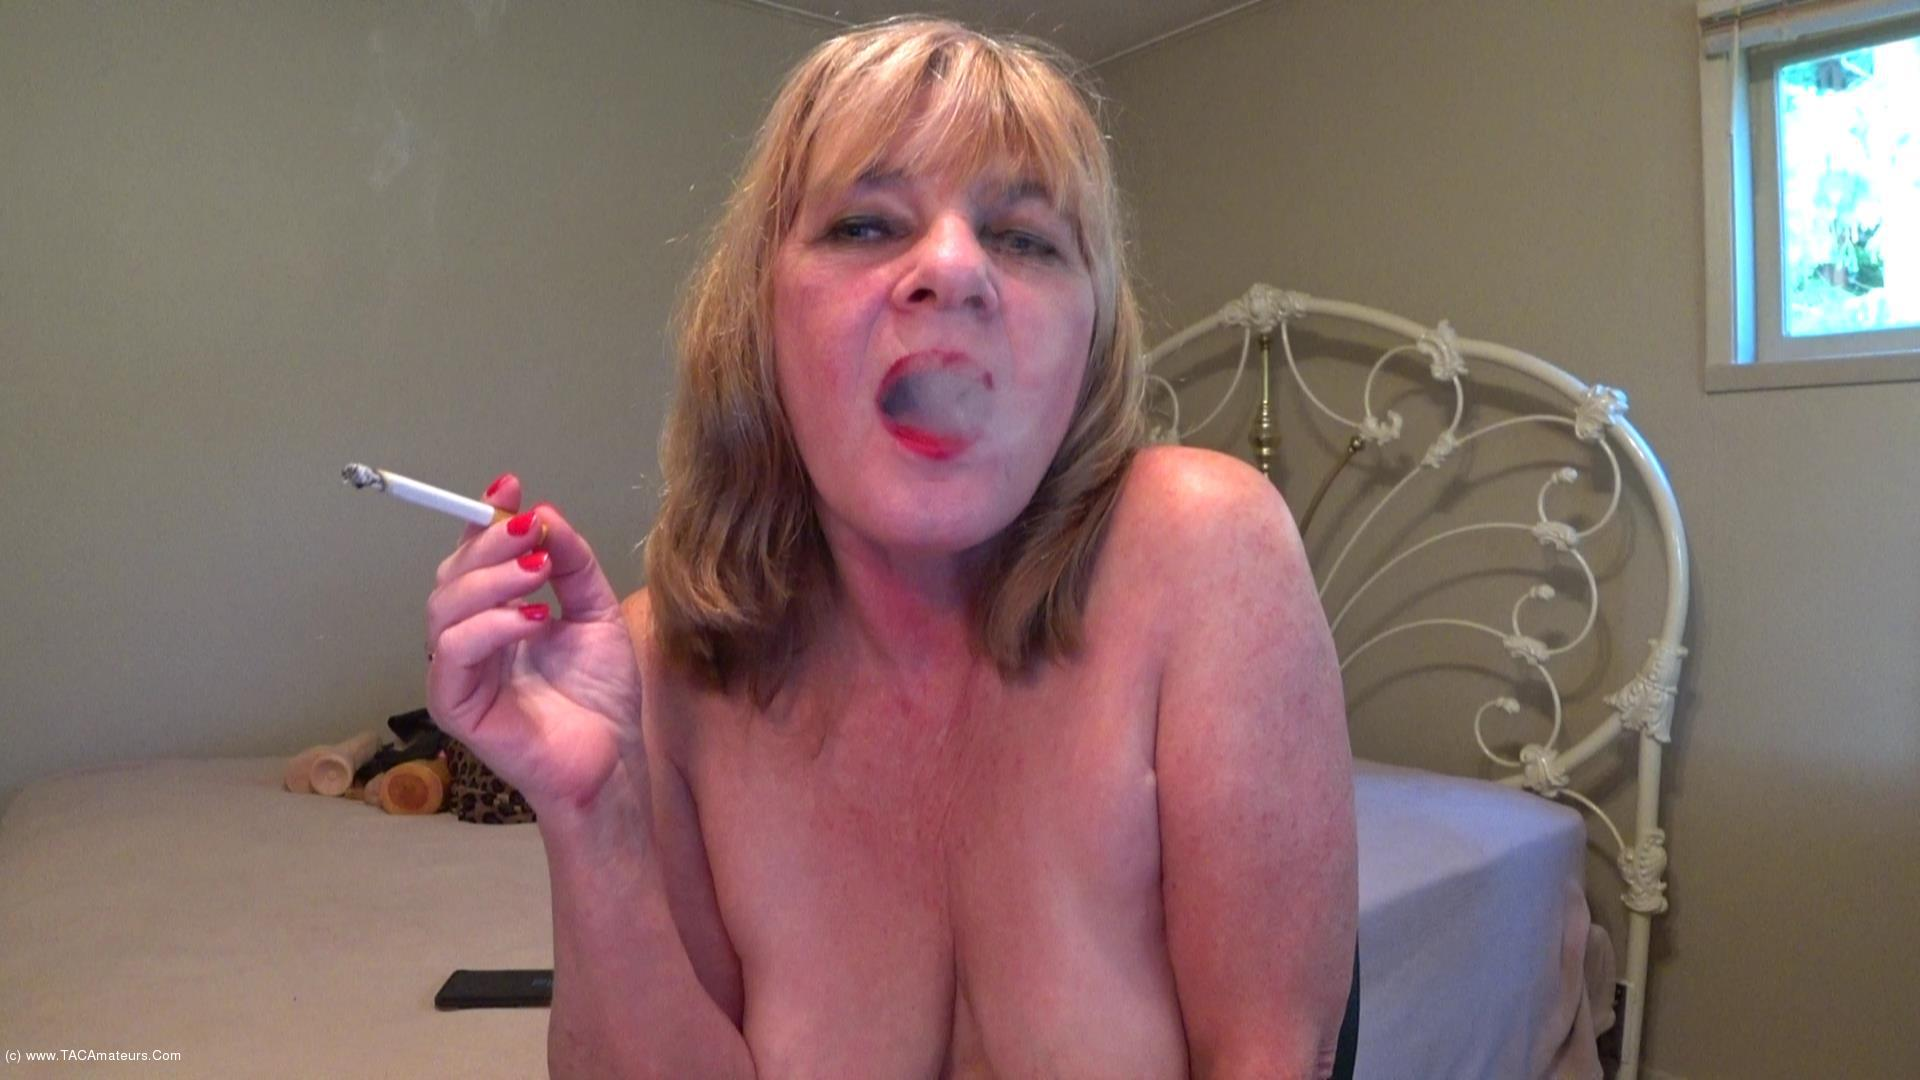 CougarBabeJolee - Titty Play & Smoking scene 2